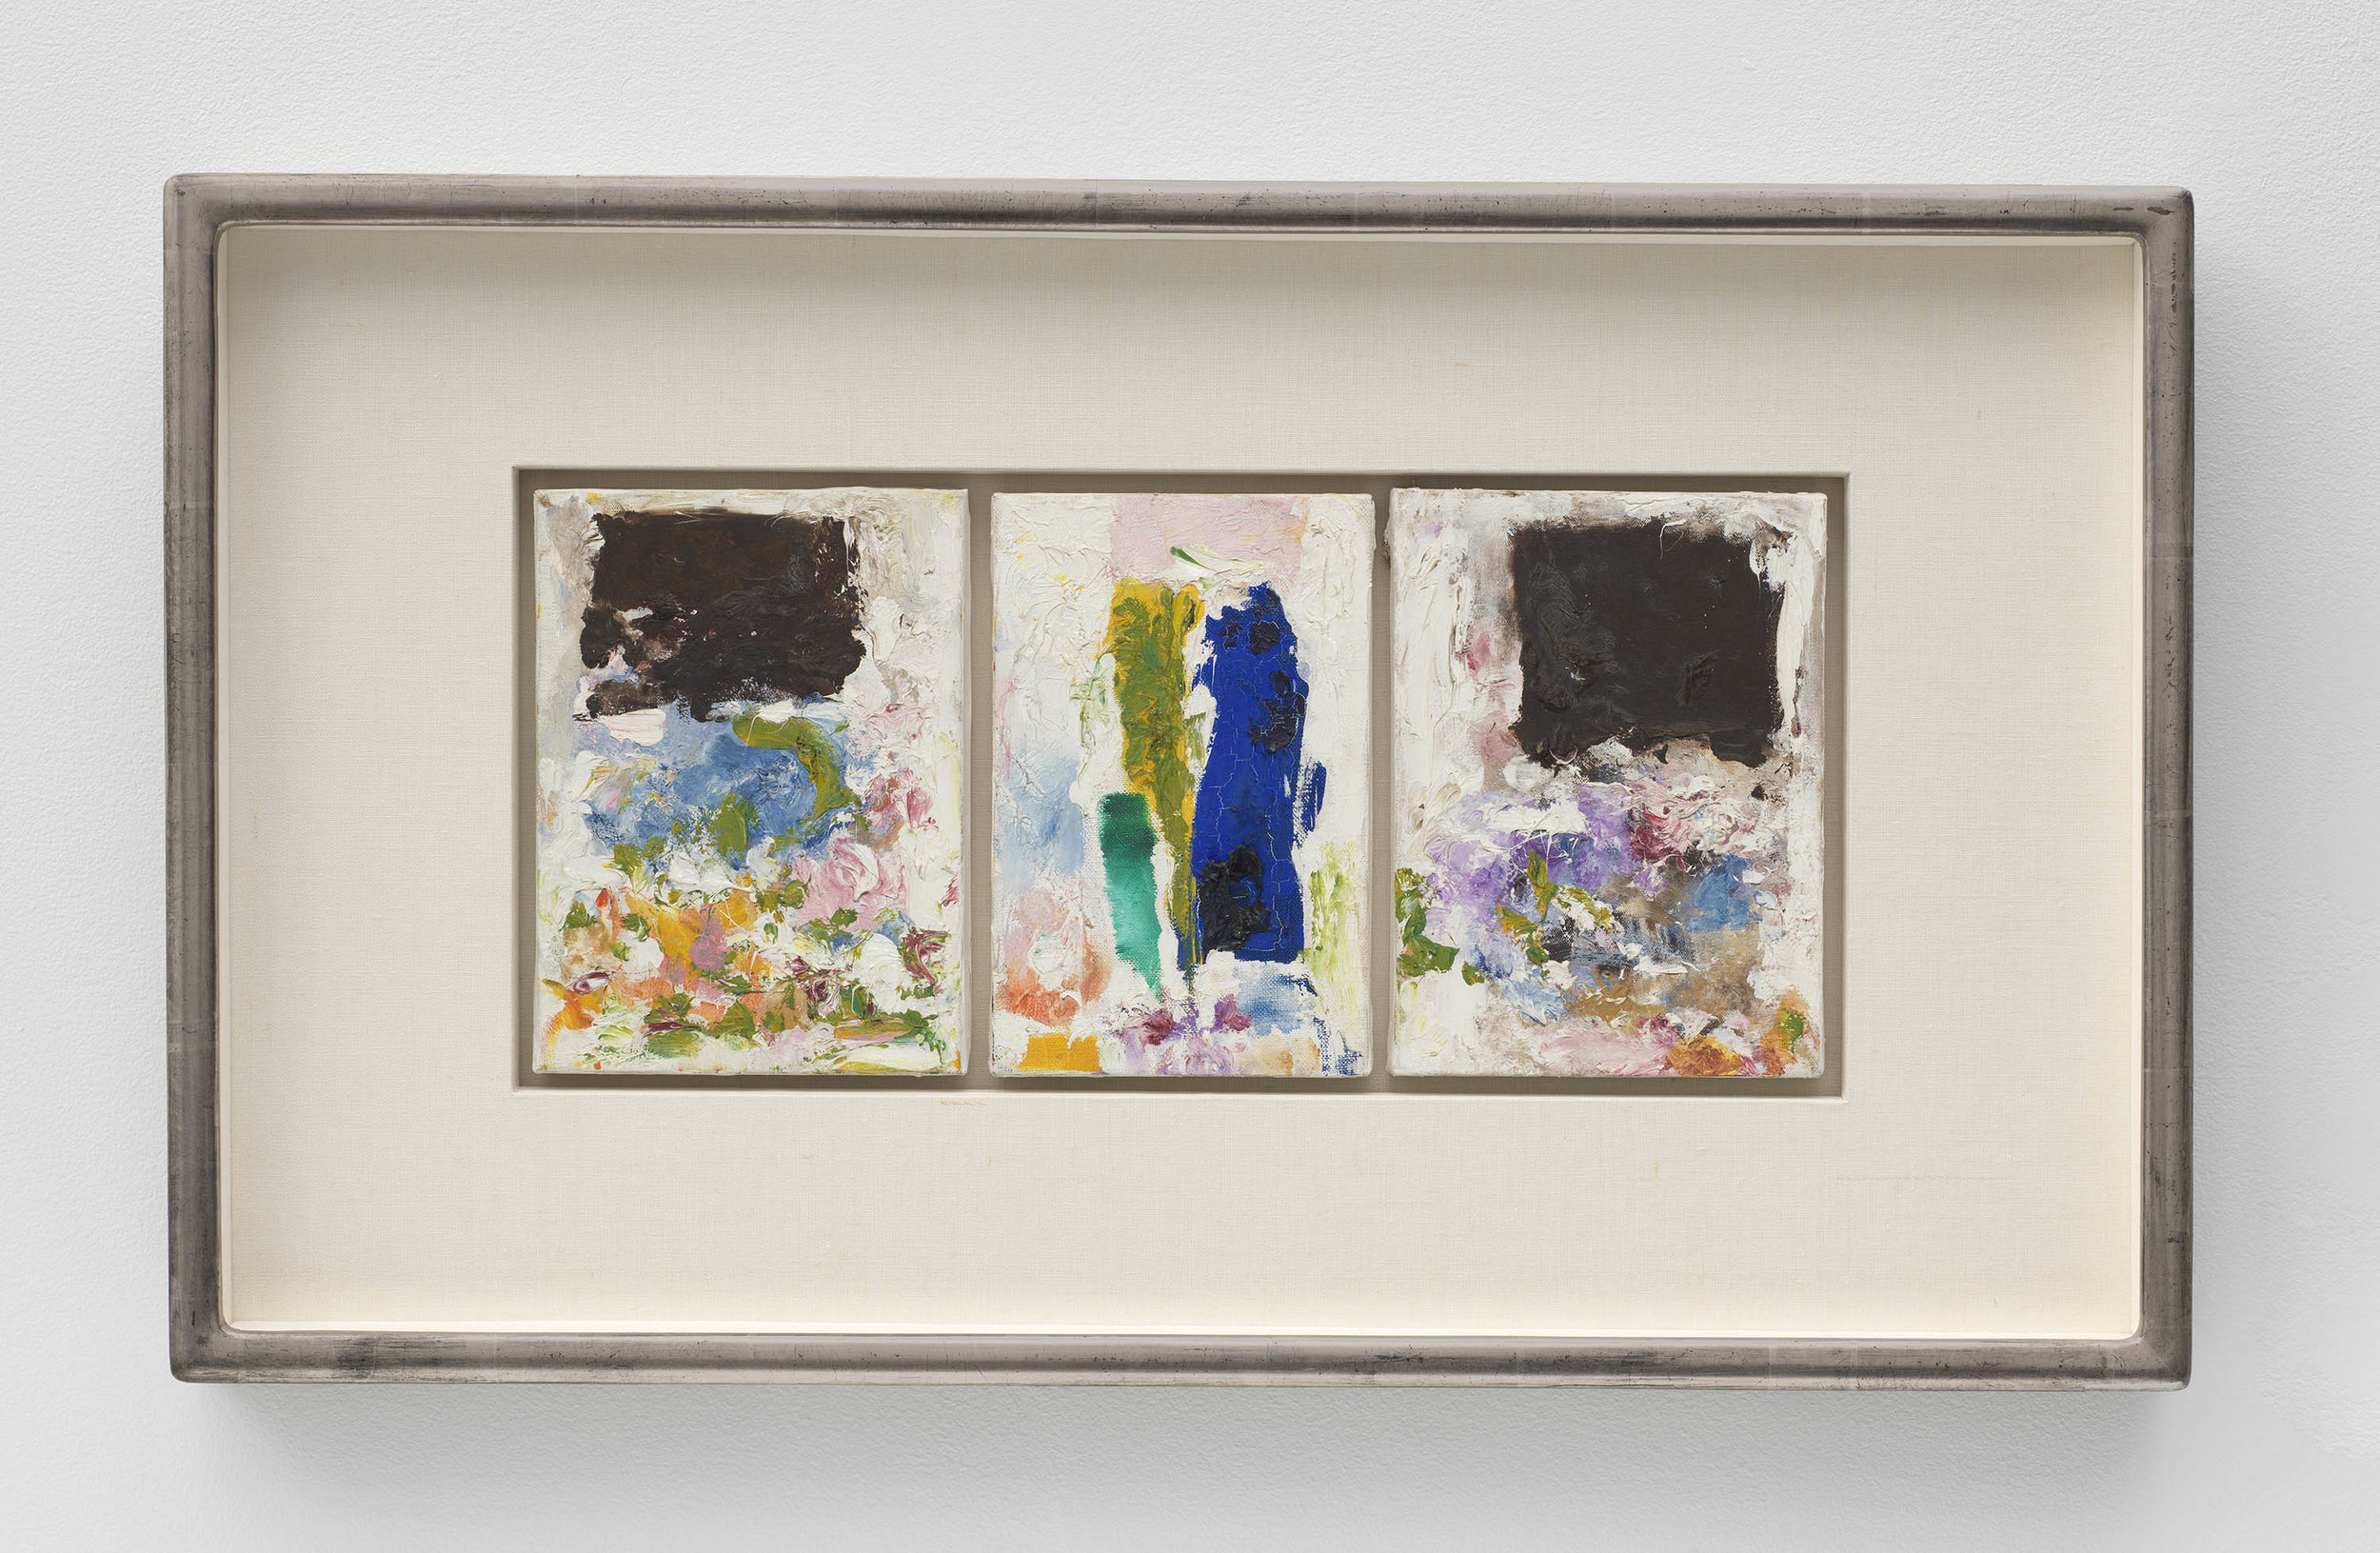 Joan Mitchell,   Untitled , 1974-1975, Oil on canvas in three (3) parts, 8 5/8 x 19 1/8 inches, 21.9 x 48.6 cm, Framed: 17 3/4 x 29 3/4 x 2 inches, 45.1 x 75.6 x 5.1 cm